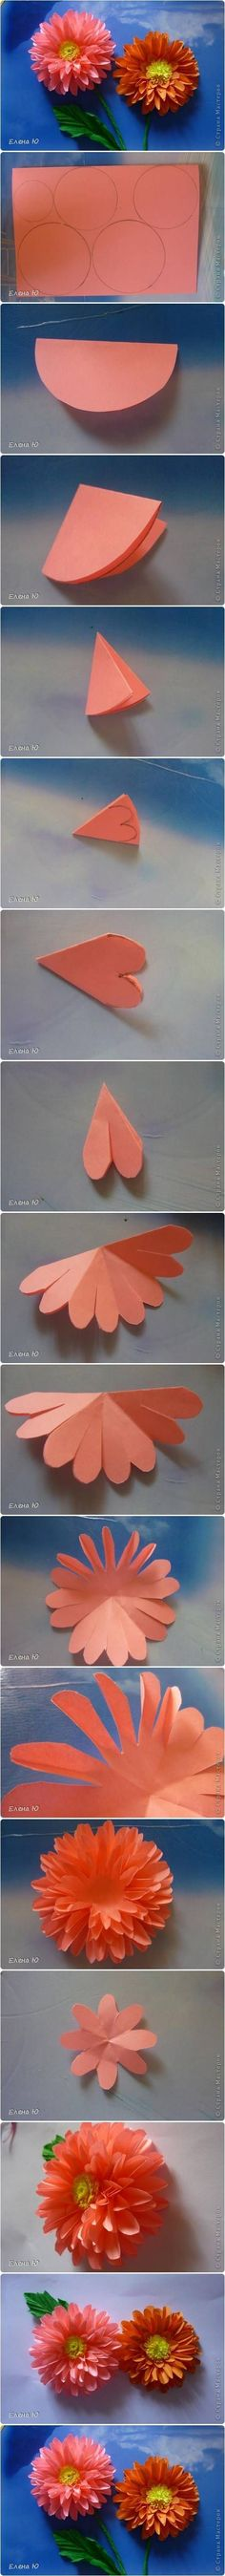 awesome How to Make Paper Dahlias